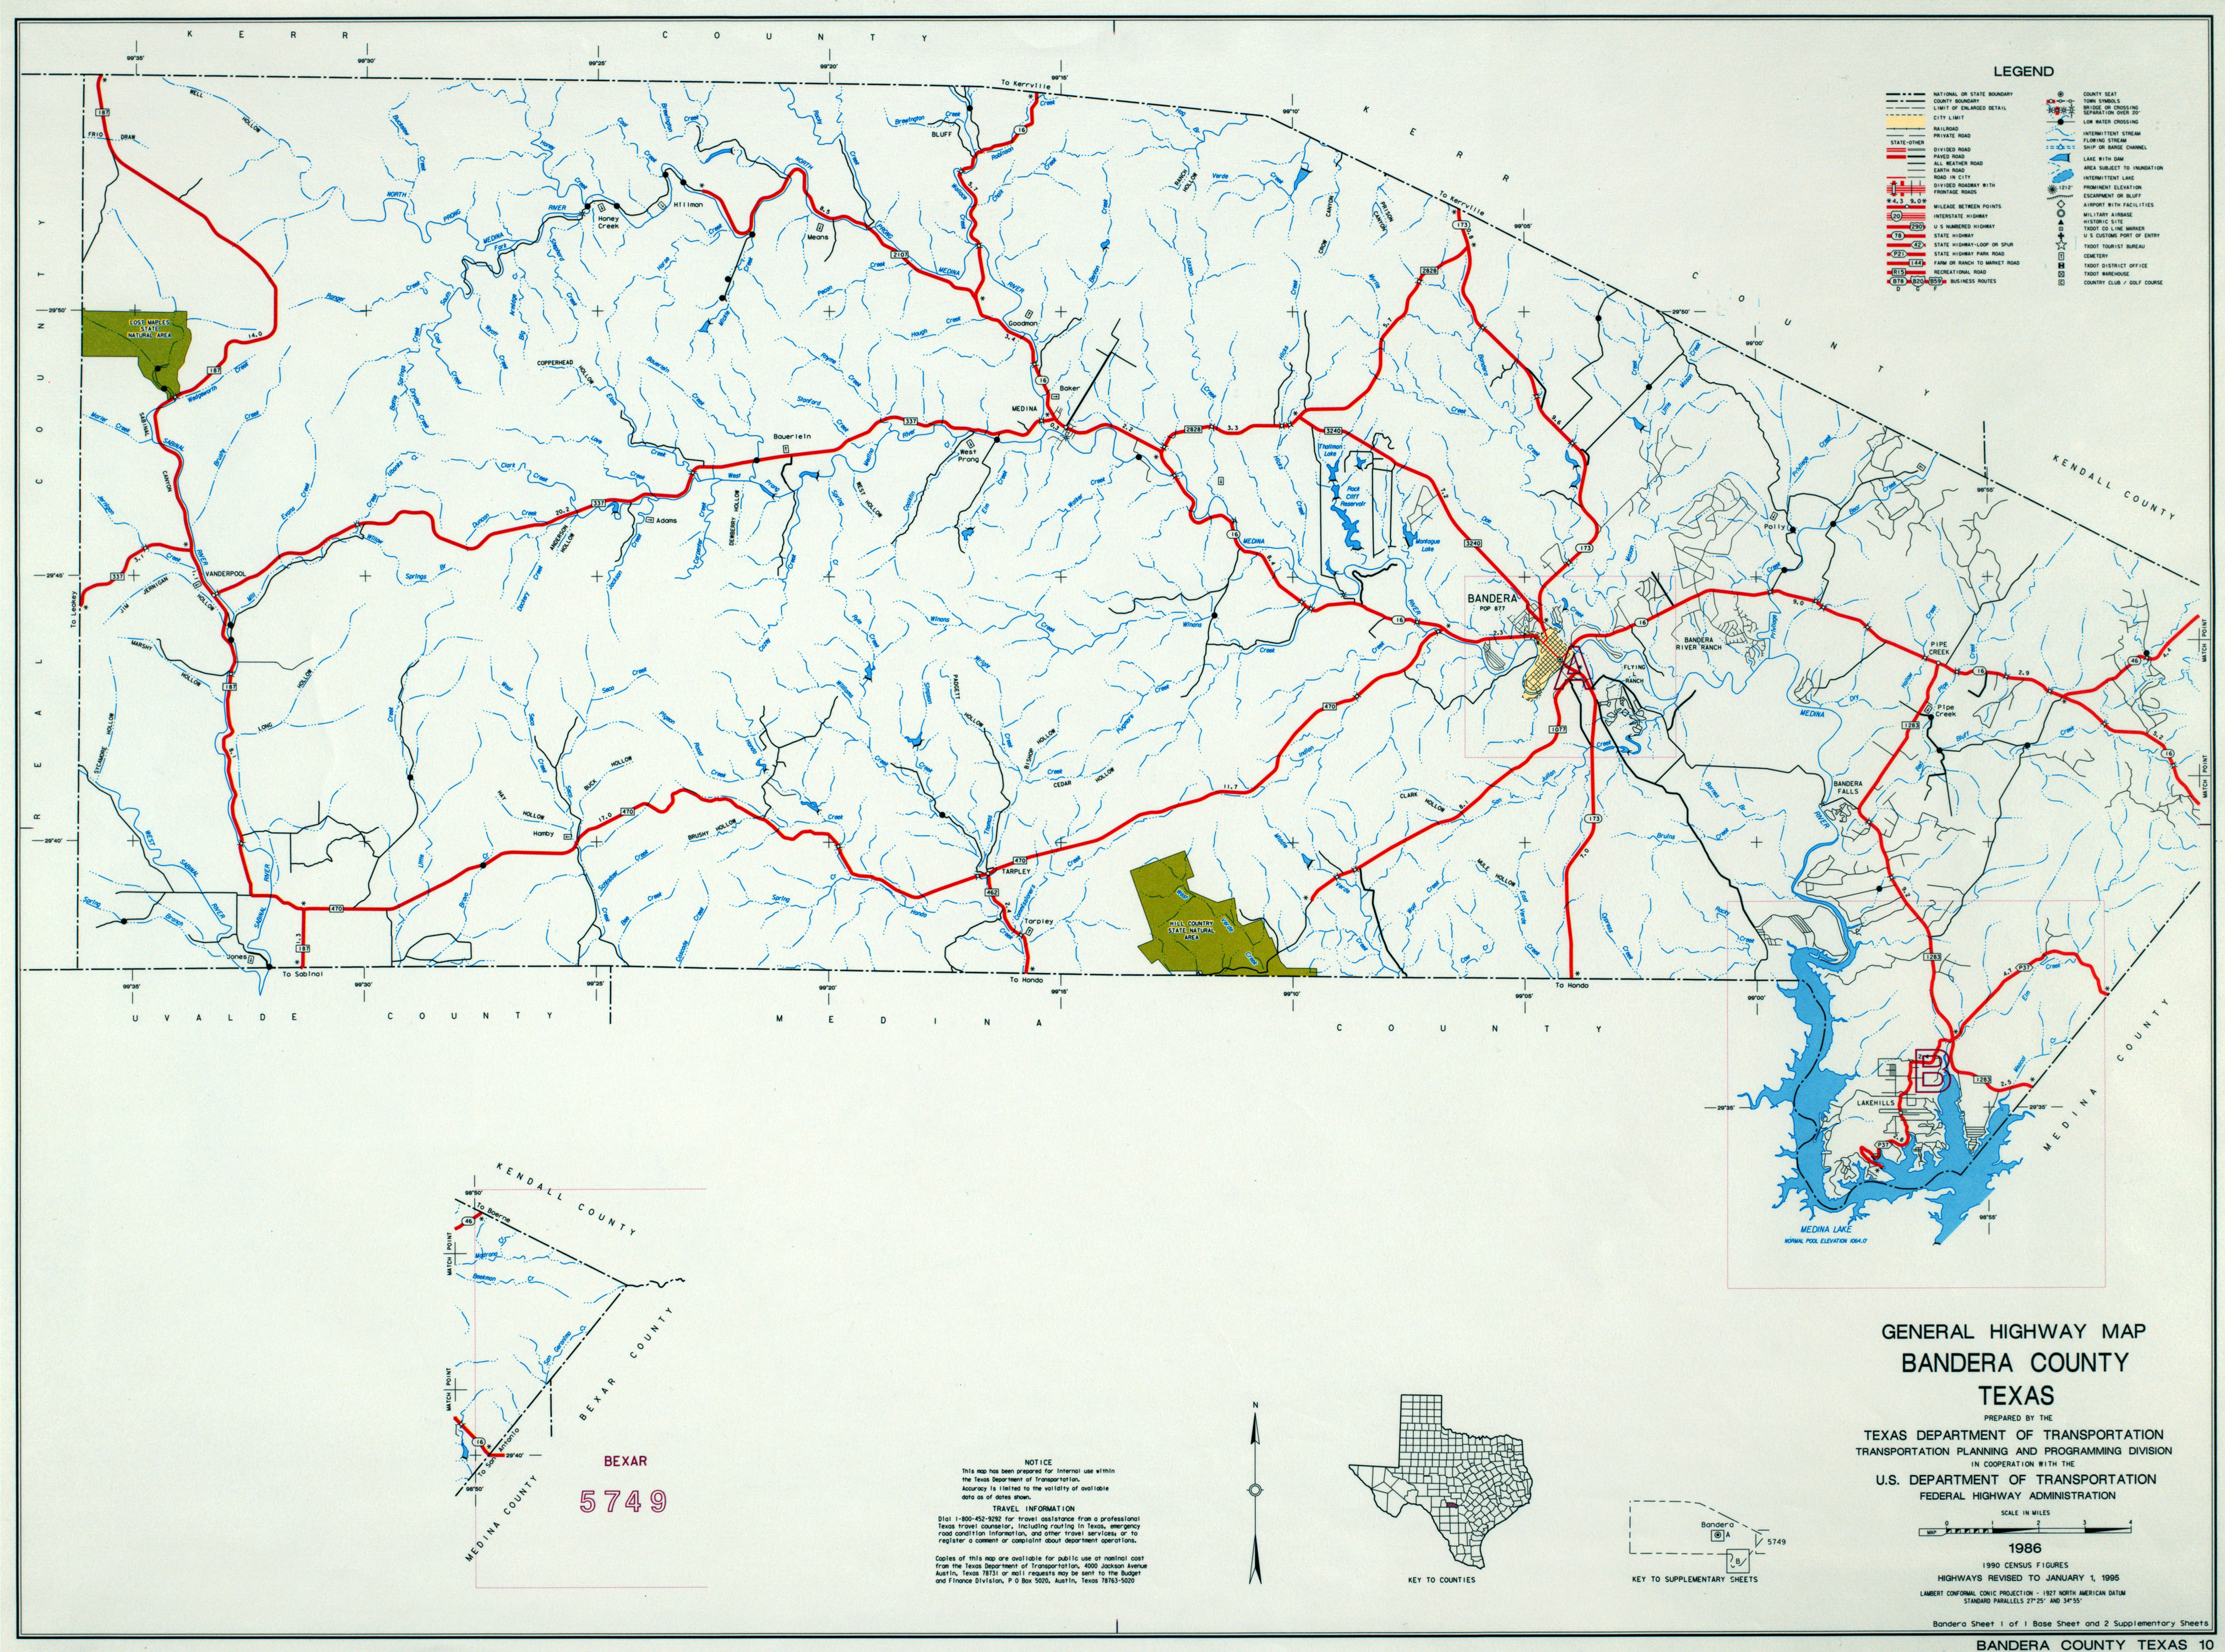 Texas County Highway Maps Browse - Perry-Castañeda Map Collection - Comanche County Texas Map